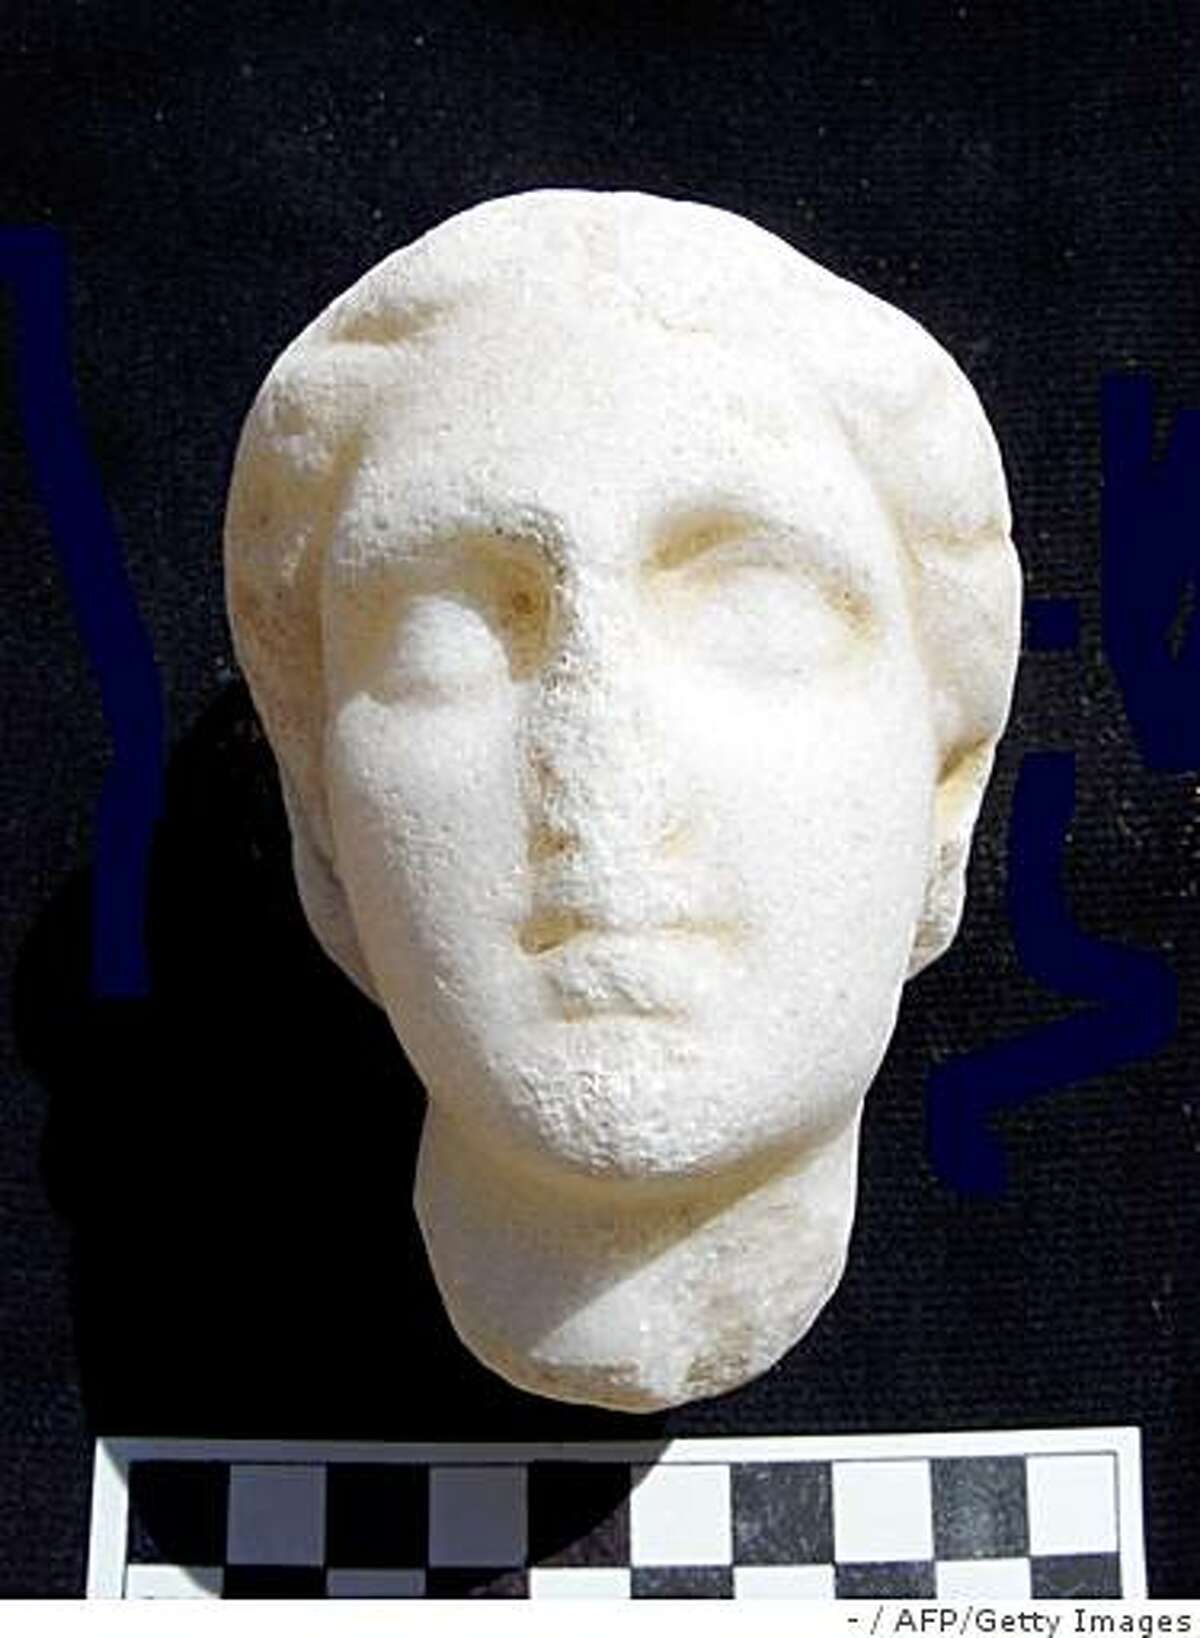 A recent undated handout picture from the Egyptian Supreme Council of Antiquities shows a newly discovered carved head of Cleopatra at the Taposiris Magna temple, West of Alexandria. An archaeological team from Egypt and the Dominican Republic completed a three-year radar survey of Taposiris Magna as part of the search for the tomb of Cleopatra and Mark Antony, according to to the SCA in a press statement released on April 15, 2009. AFP PHOTO/HO/EGYPTIAN SUPREME COUNCIL OF ANTIQUITIES == RESTRICTED TO EDITORIAL USE == (Photo credit should read -/AFP/Getty Images)